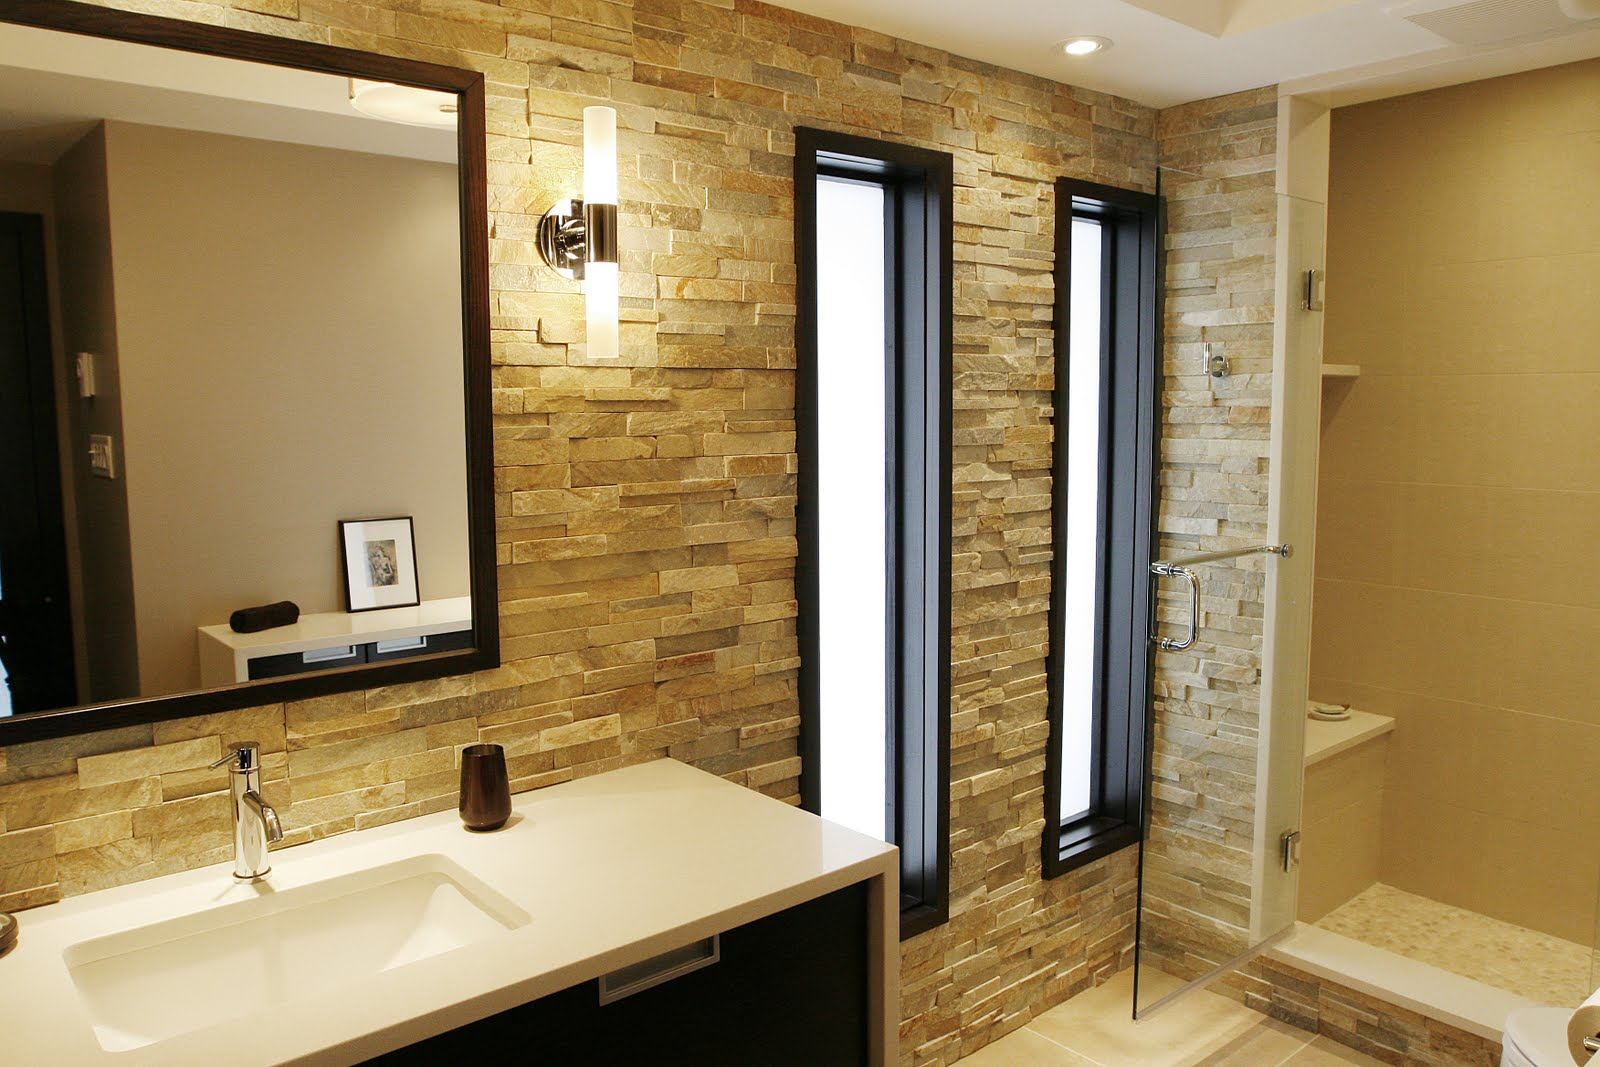 bathroom-rustic-modern-bathroom-design-with-beige-natular-stone-brick-wall-complete-with-shower-room-and-bathroom-cabinet-with-white-washbasin-plus-rectangular-mirror-and-wall-light-beige-bathroom-de